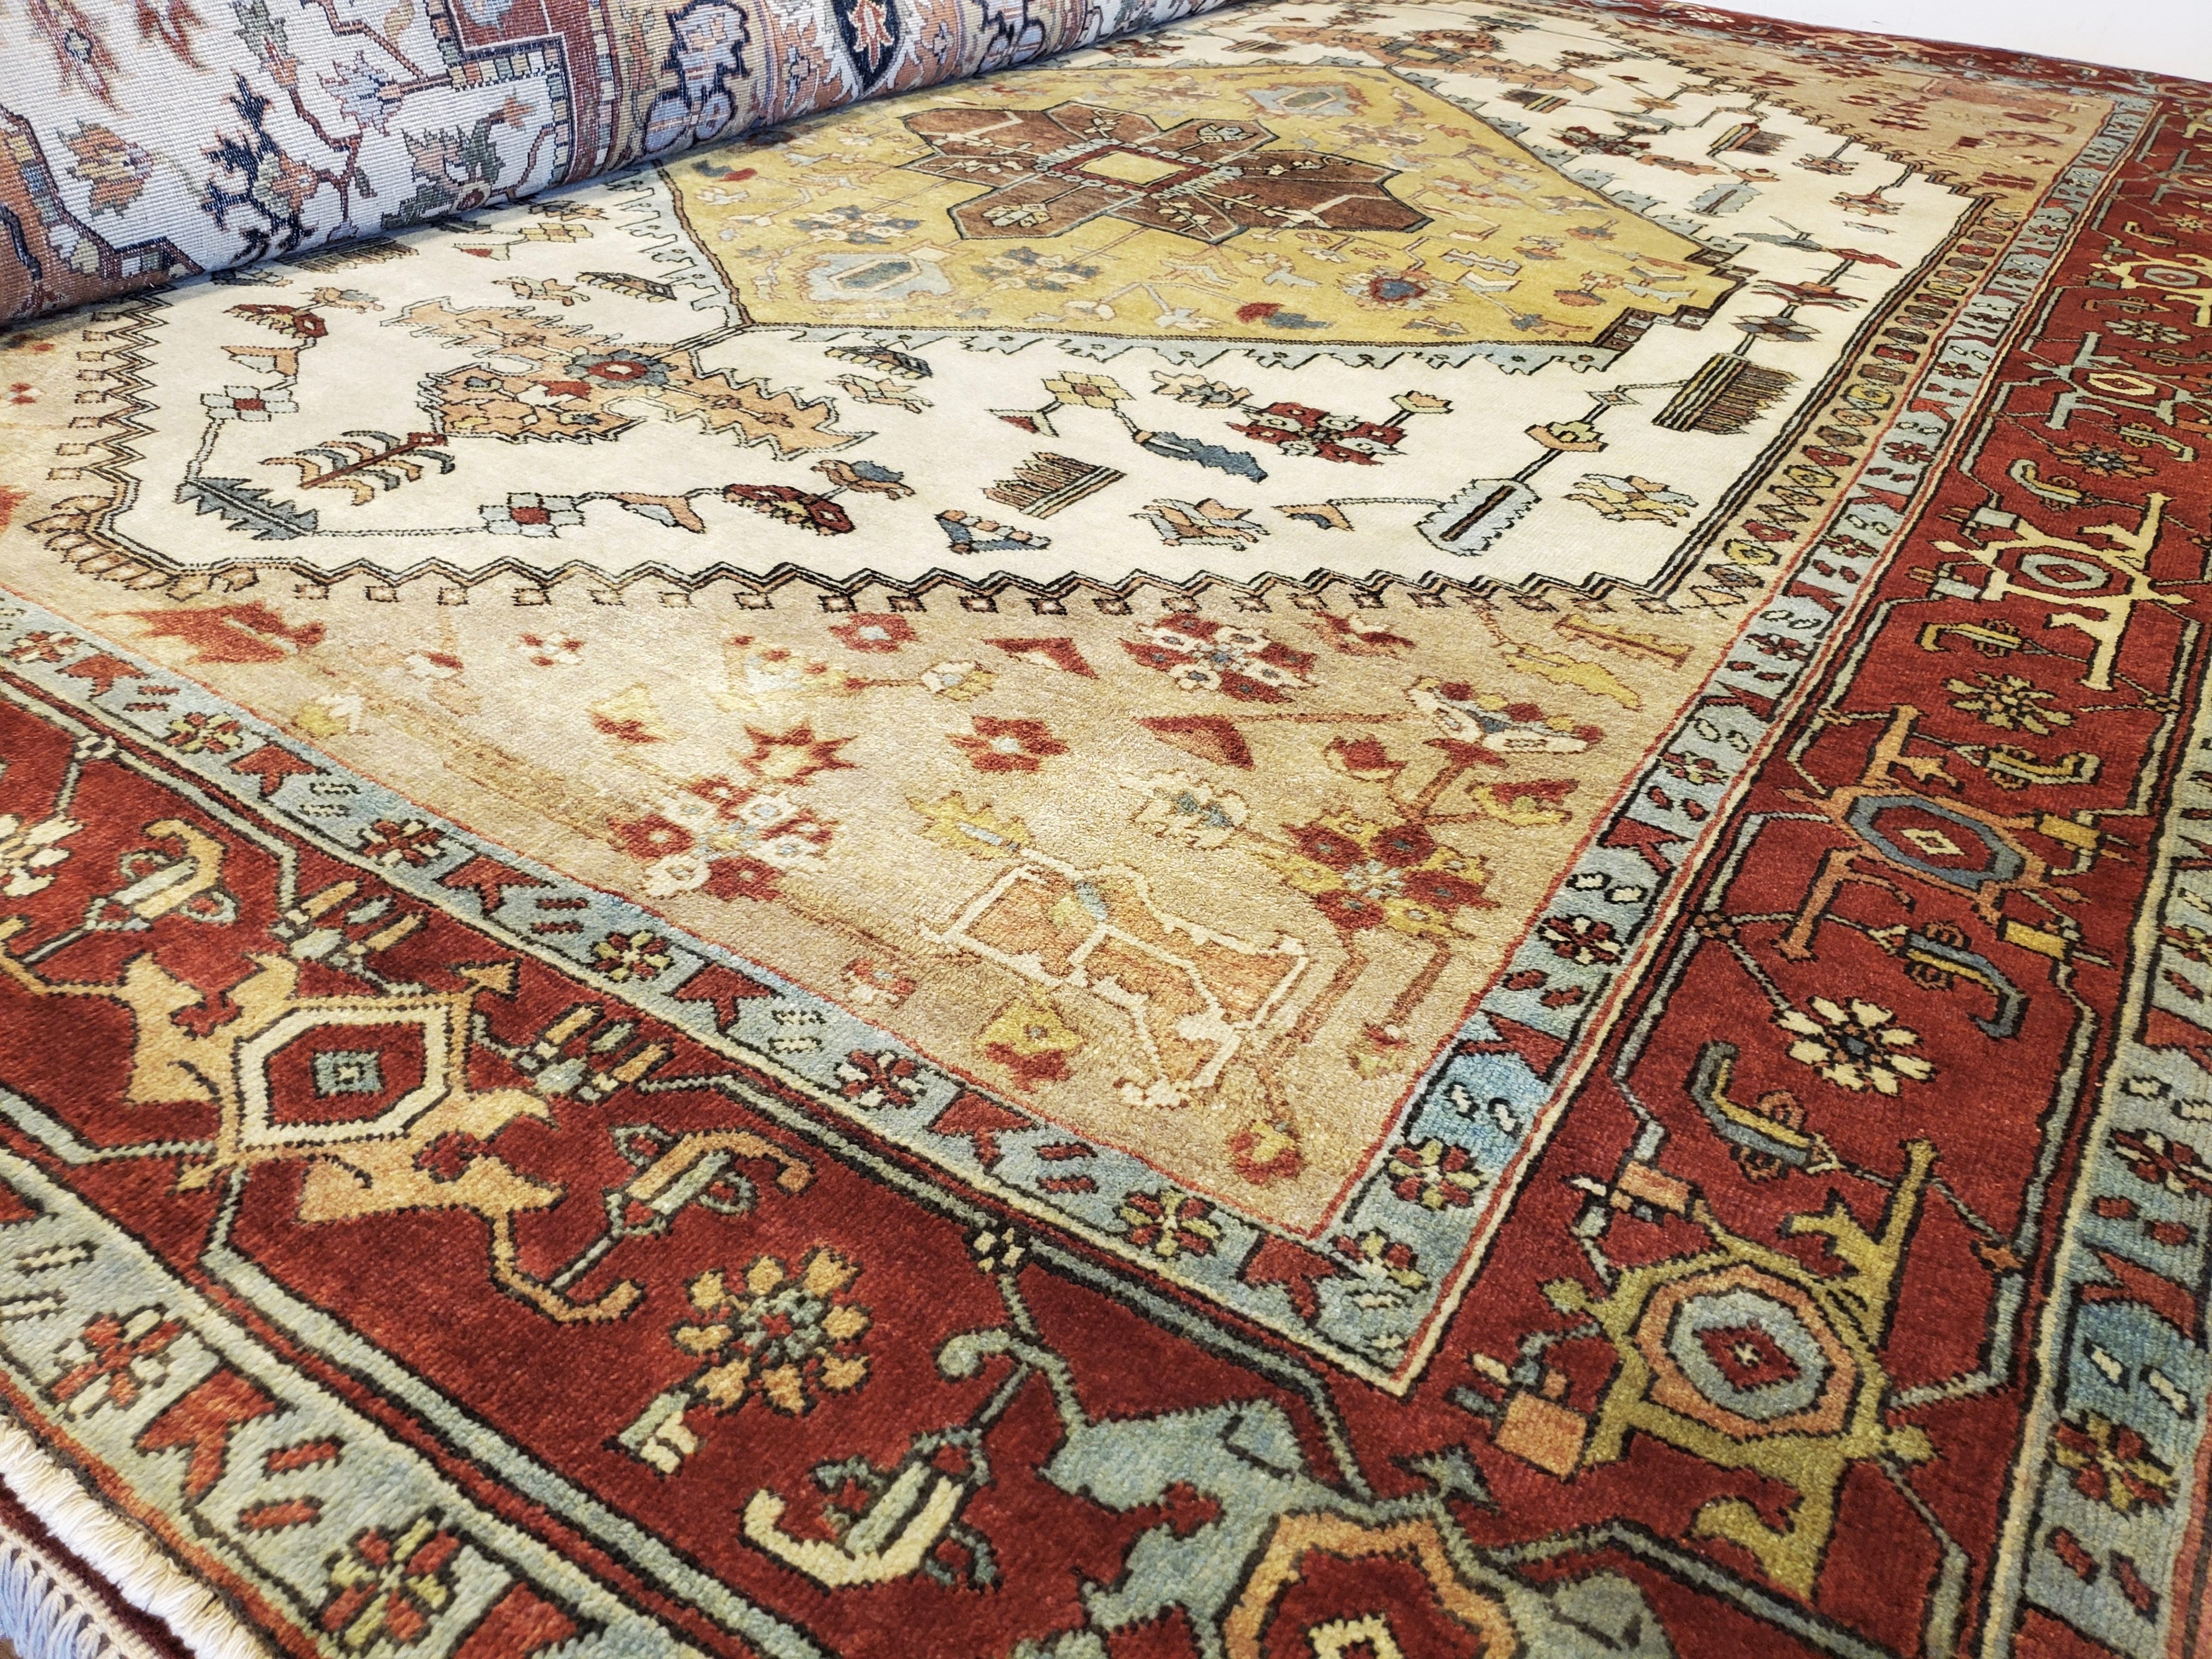 May Day Deal! 💃🏼 Vintage SERAPI Oriental Rug  9x12 $1975 reduce from $4950 Call 205-870-4444 or drop by if it's for you!  Please share! 😇 #nilipourorientalrugs #MayDayDeal #familybusiness #since1972 #fullservice #shoplocal #happycustomer #artyoucantreadon #orientalrug #rug #arearug #naturalfibers #wholesaleprices #directimporting #affordableluxury #functionalrug #practicalrug #appeal #qualityrug #investment #conversationpiece #Lifestyle #rugcleaning #orientalrugcleaning #arearugcleaning